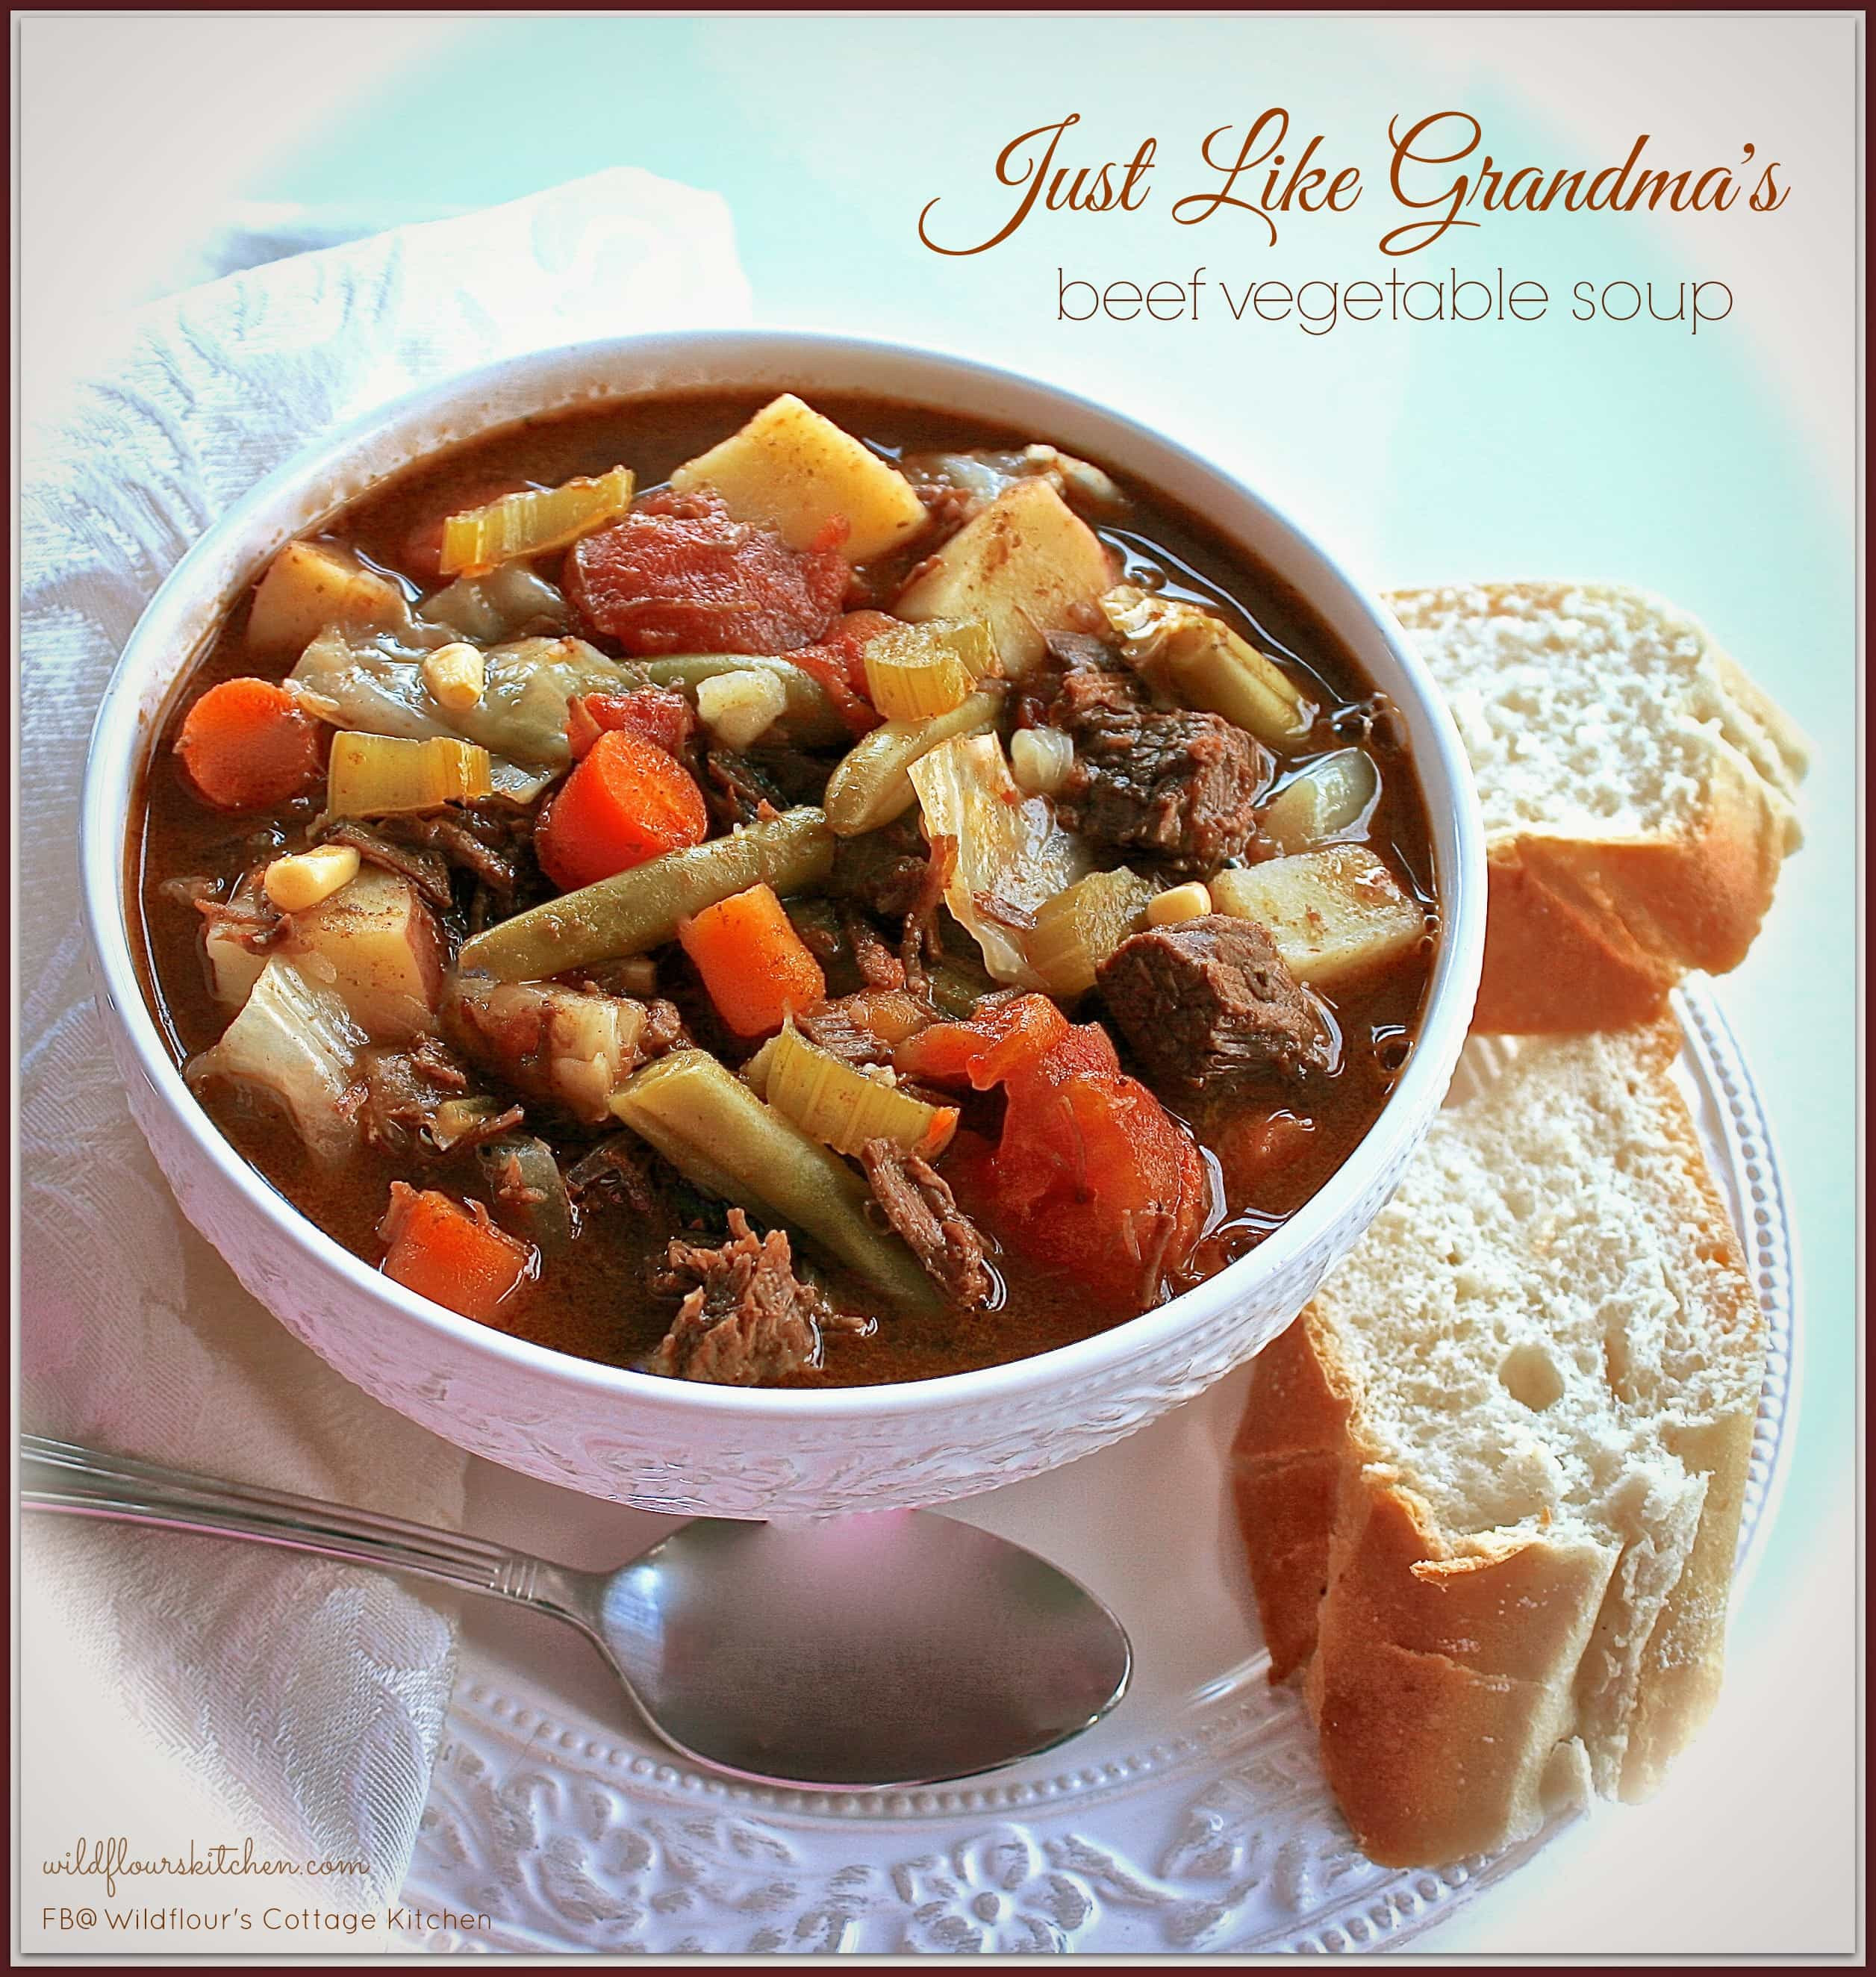 Beef Vegetable Soup  Just Like Grandma s Beef Ve able Soup Wildflour s